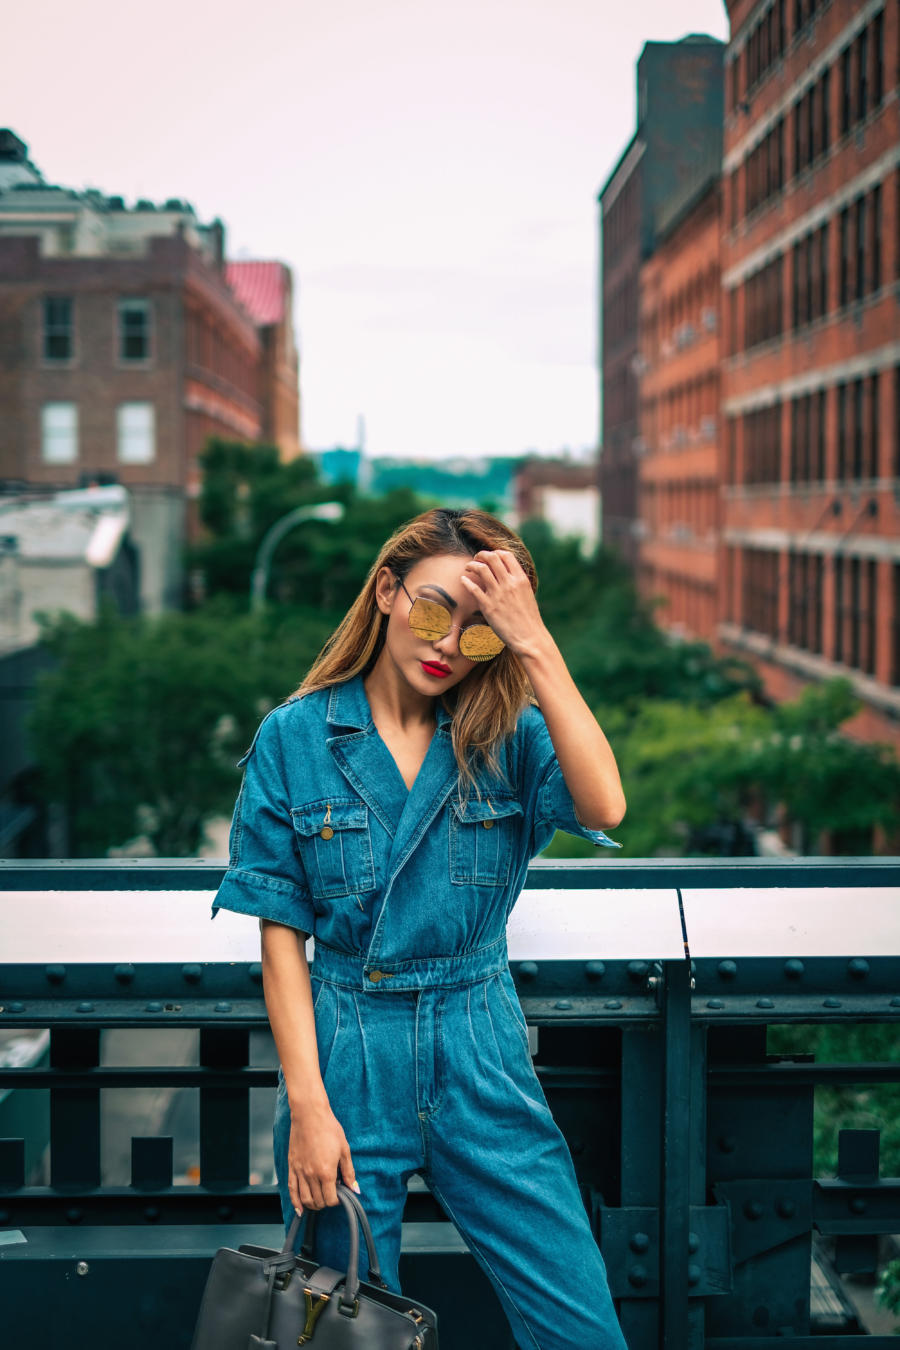 Denim Jumpsuit - Head-To-Toe Denim Look + 5 Denim Must-Haves // NotJessFashion.com